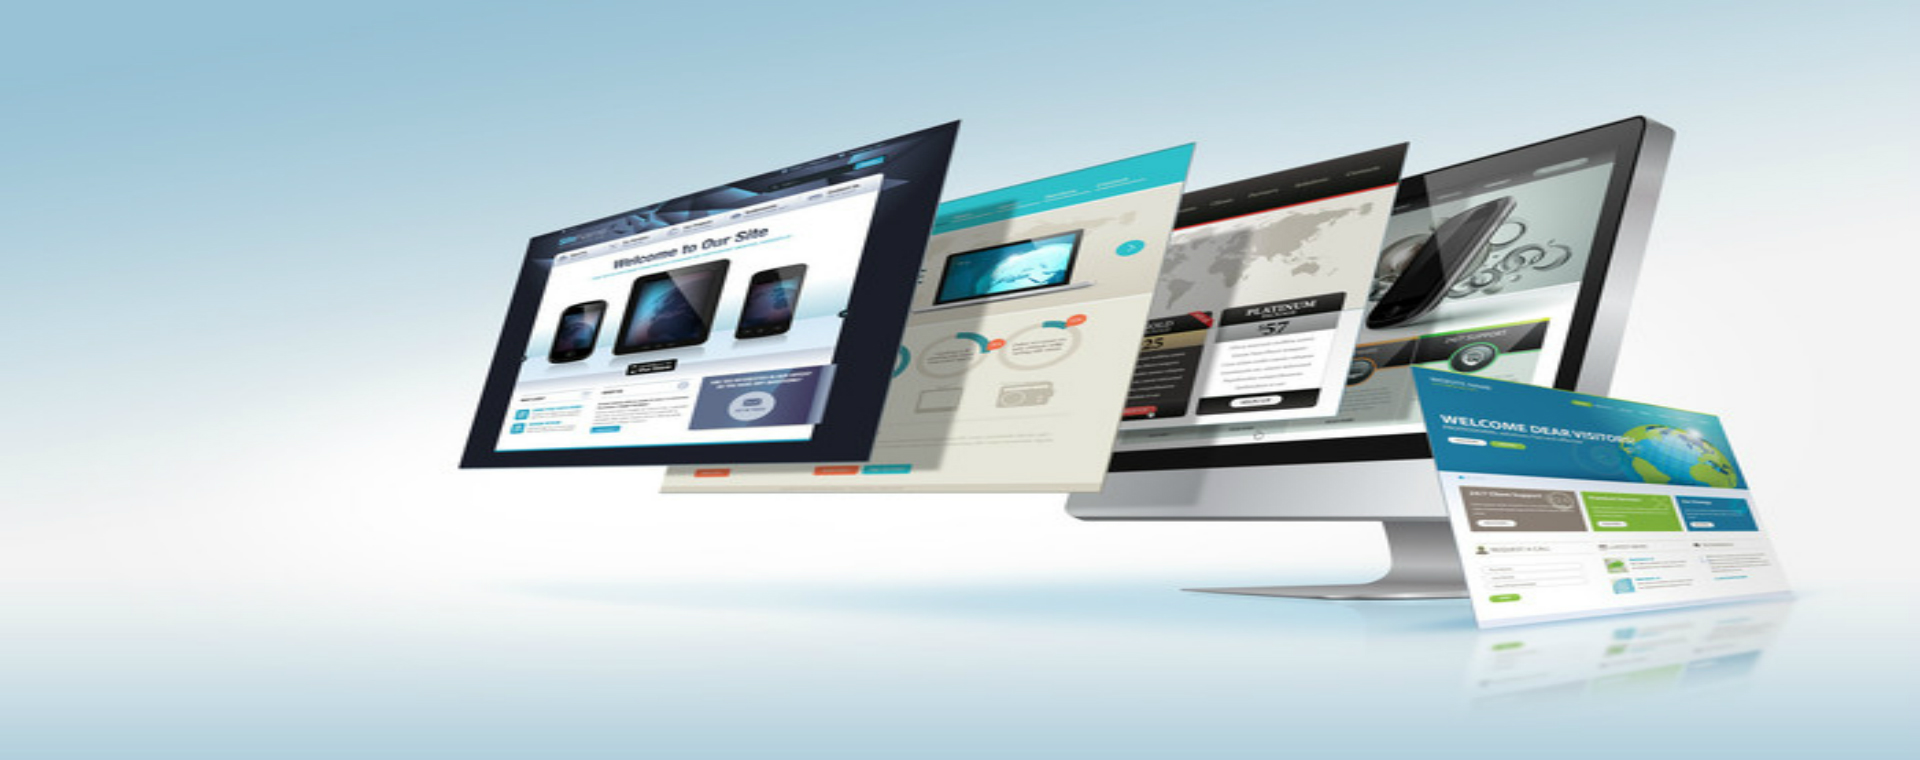 Responsive Clean Powerful Web Design and Development